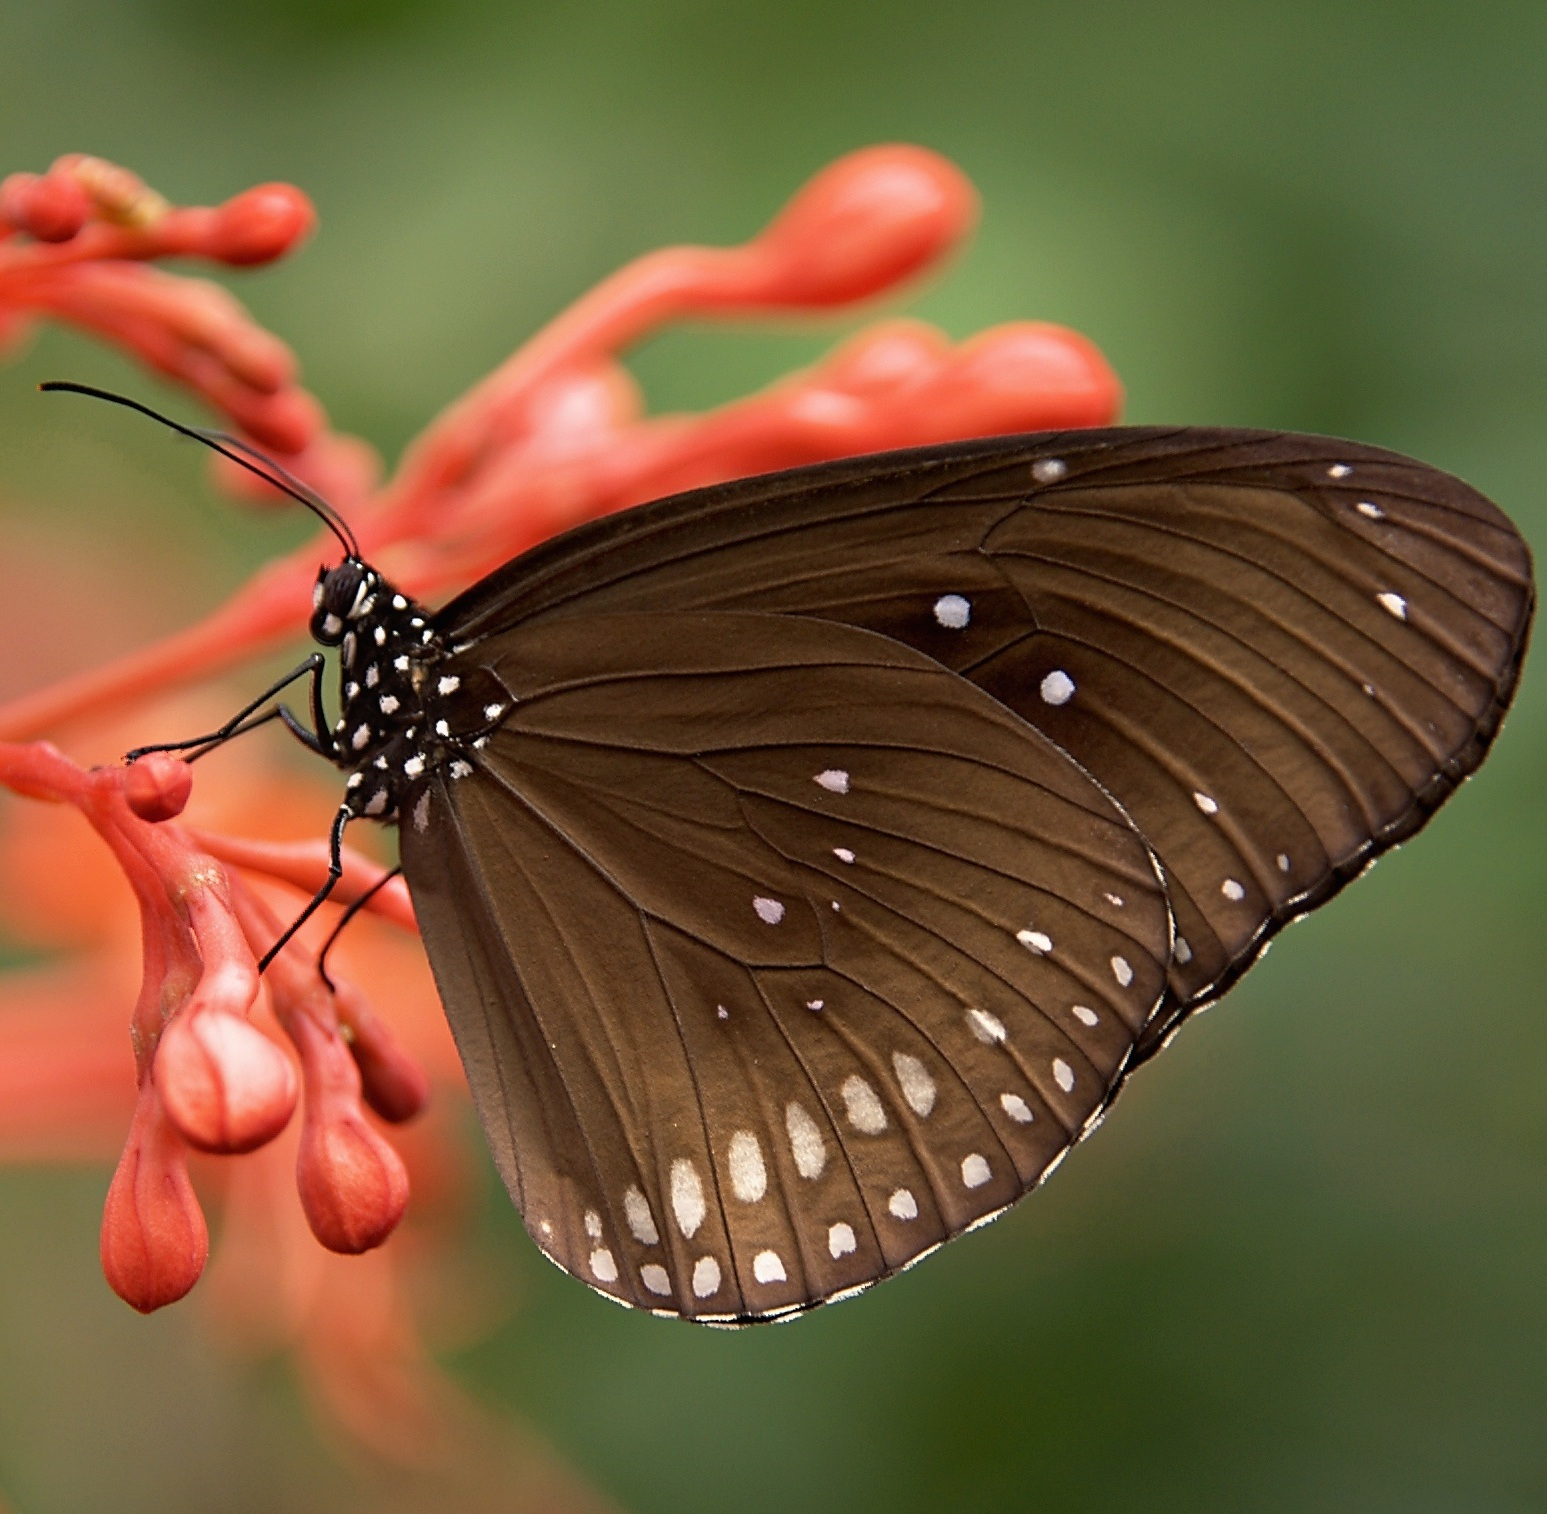 A nice photo of a striped core butterfly drawing nectar from red buds of a flower.